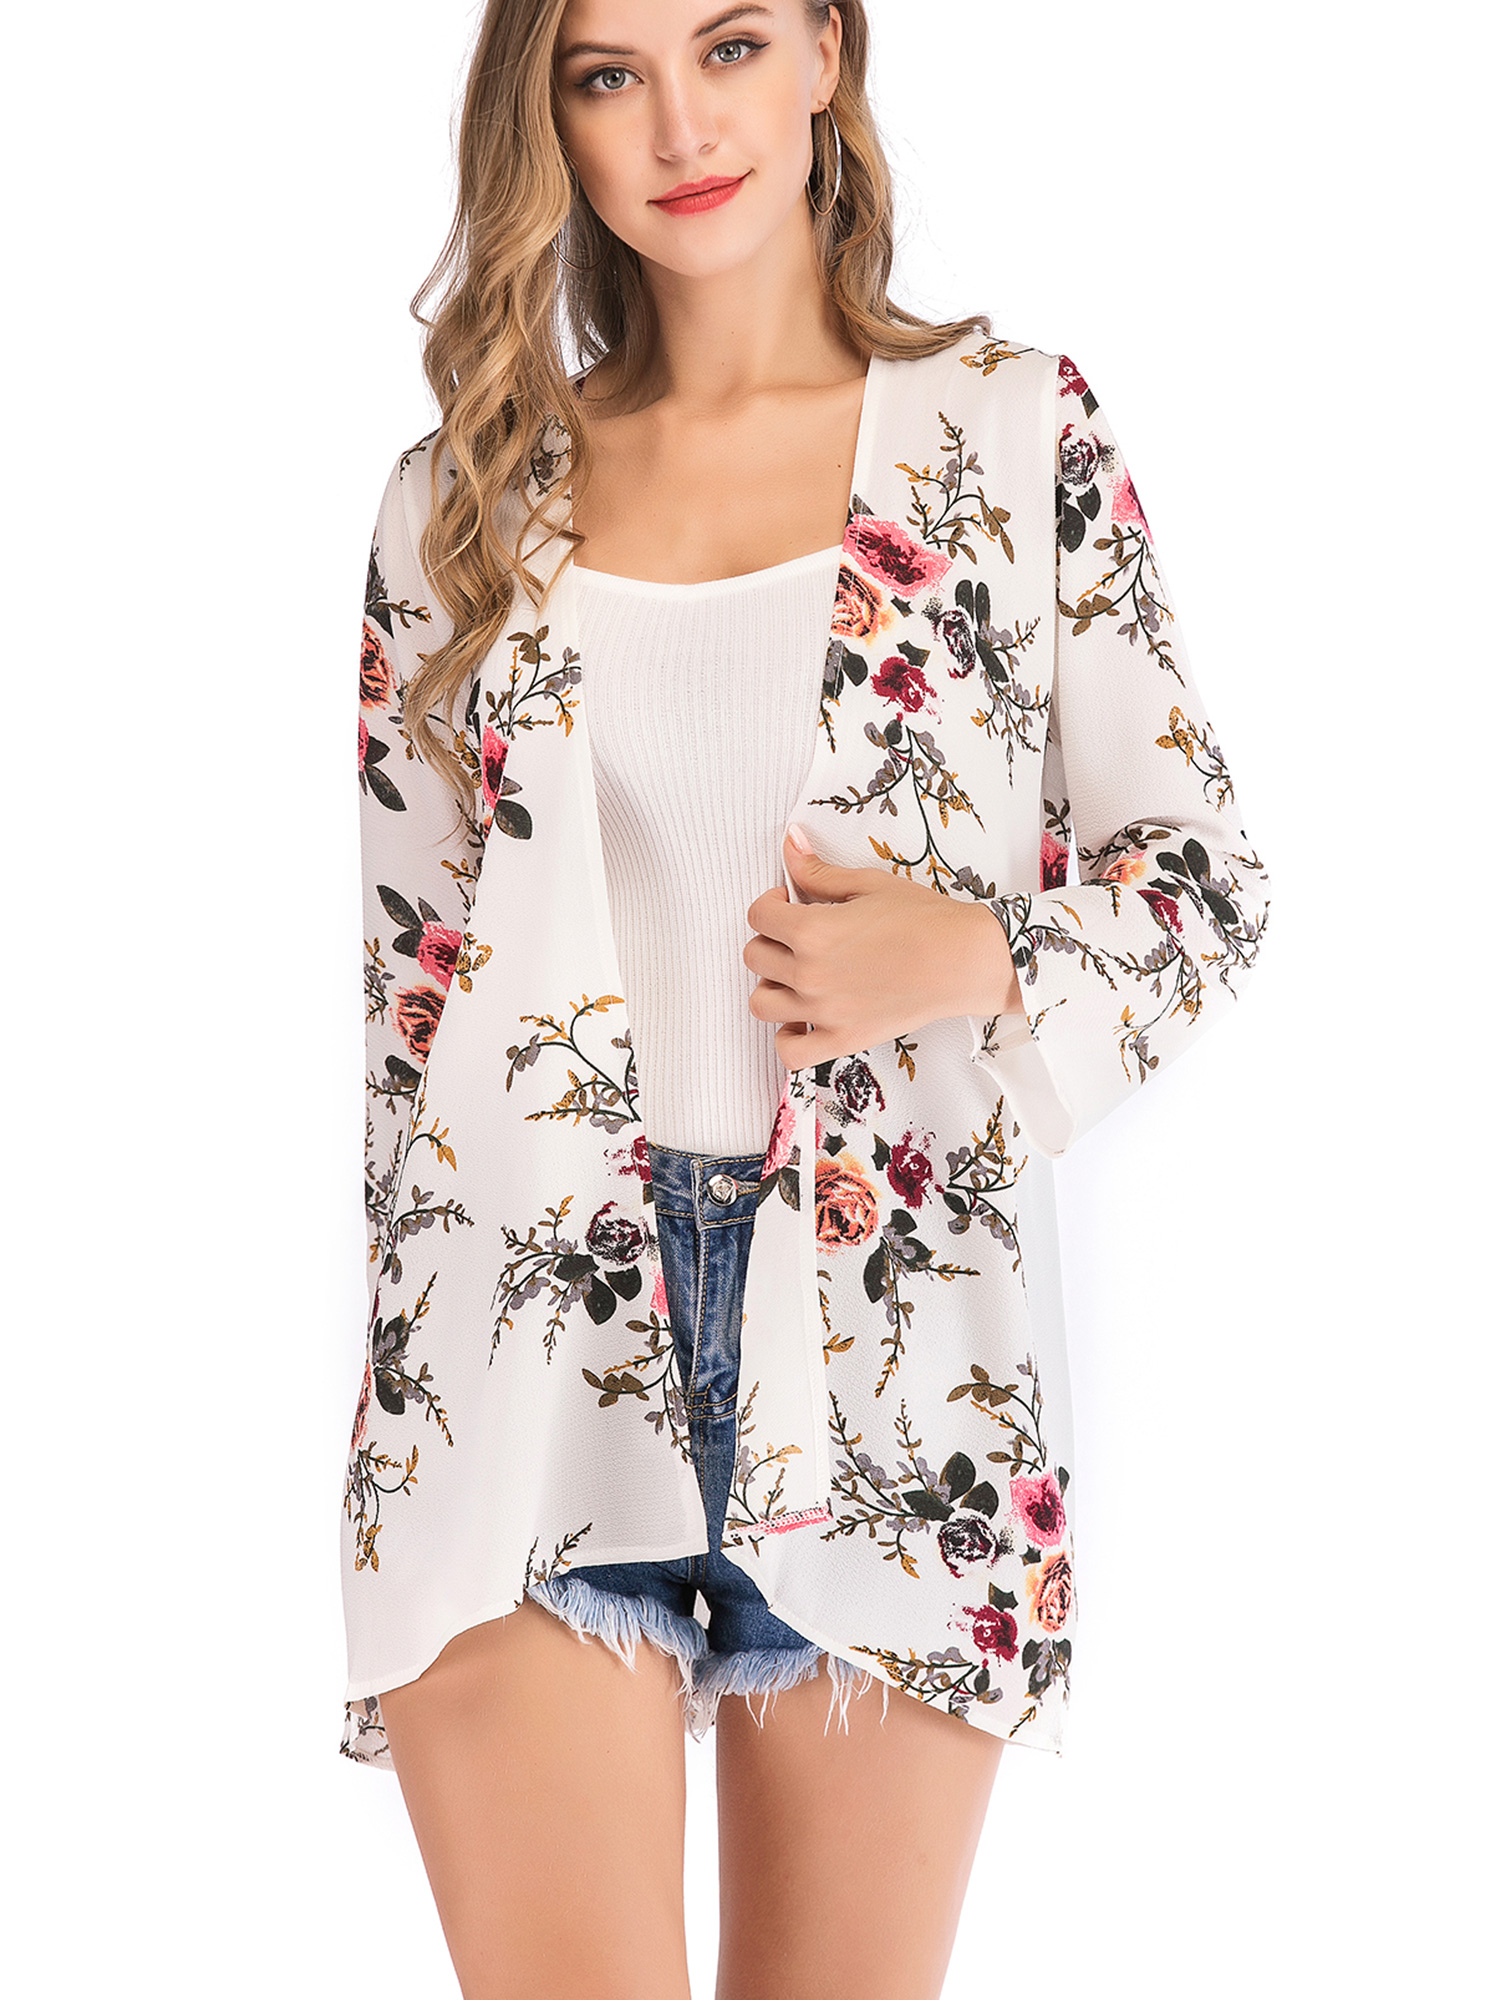 Long Sleeves Tops Soft Cotton Tops Blouse Casaul Loose Kimono Spring Customized Plus Size Clothing